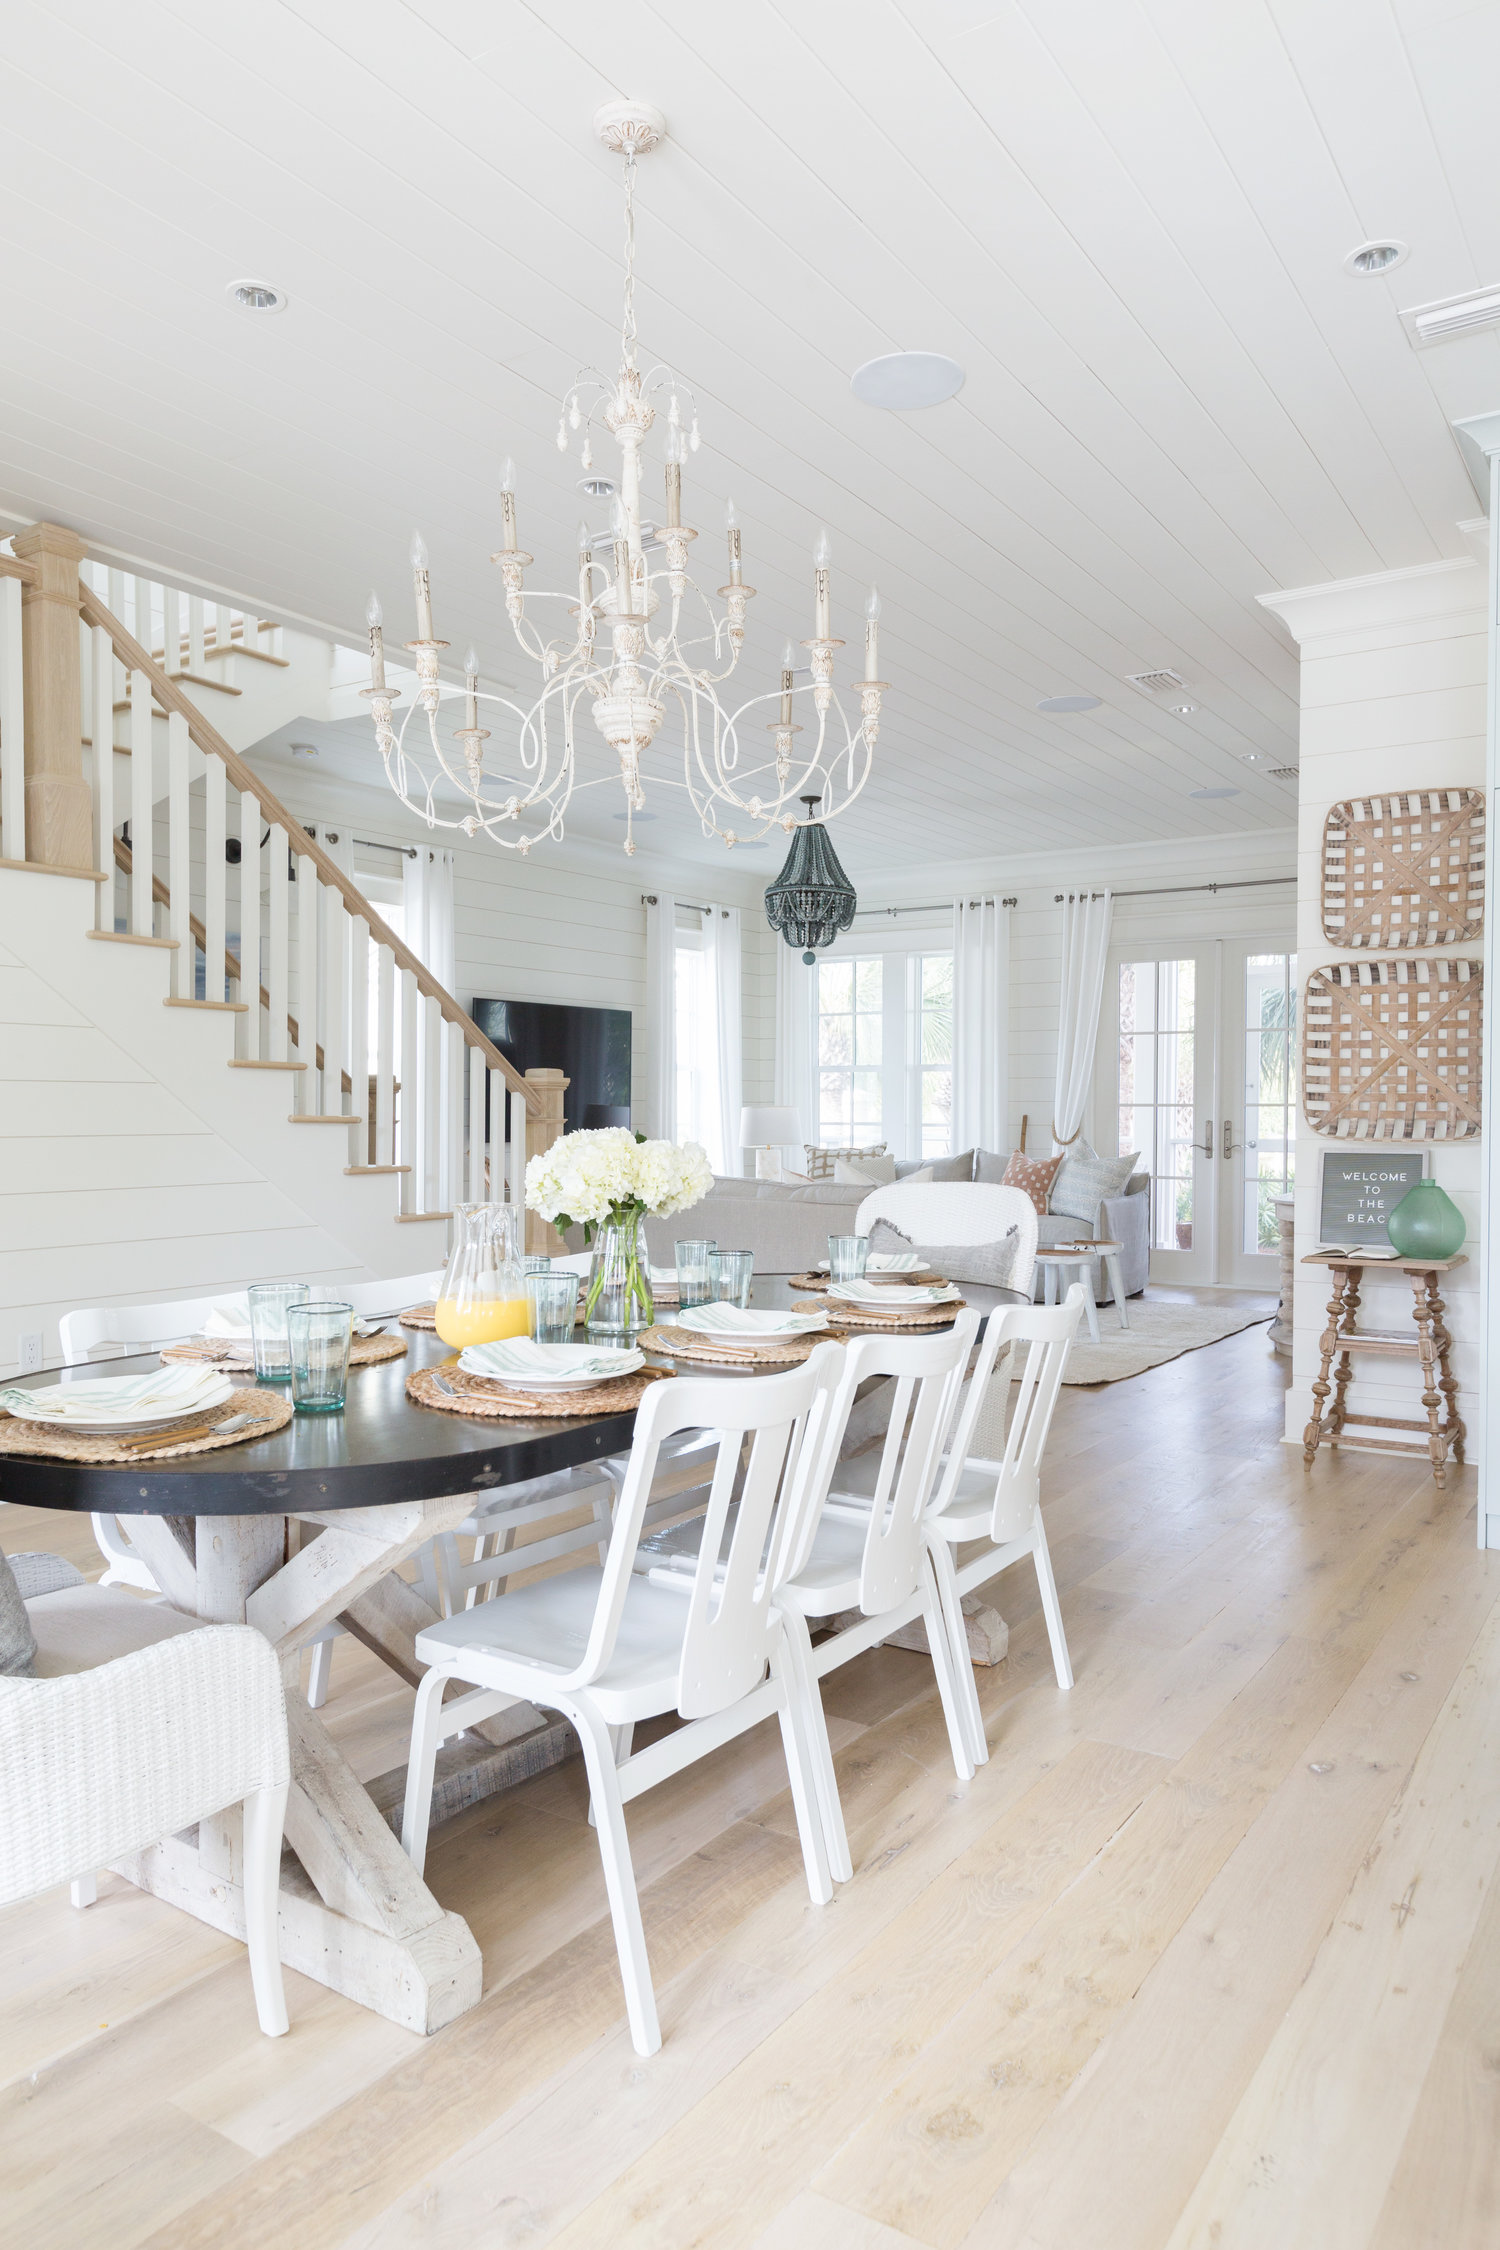 This beautiful home mixes ornate chandeliers with industrial table and farmhouse accessories kellyelko.com #farmhousestyle #interiors #chandelier #diningroom #kitchen #shiplap